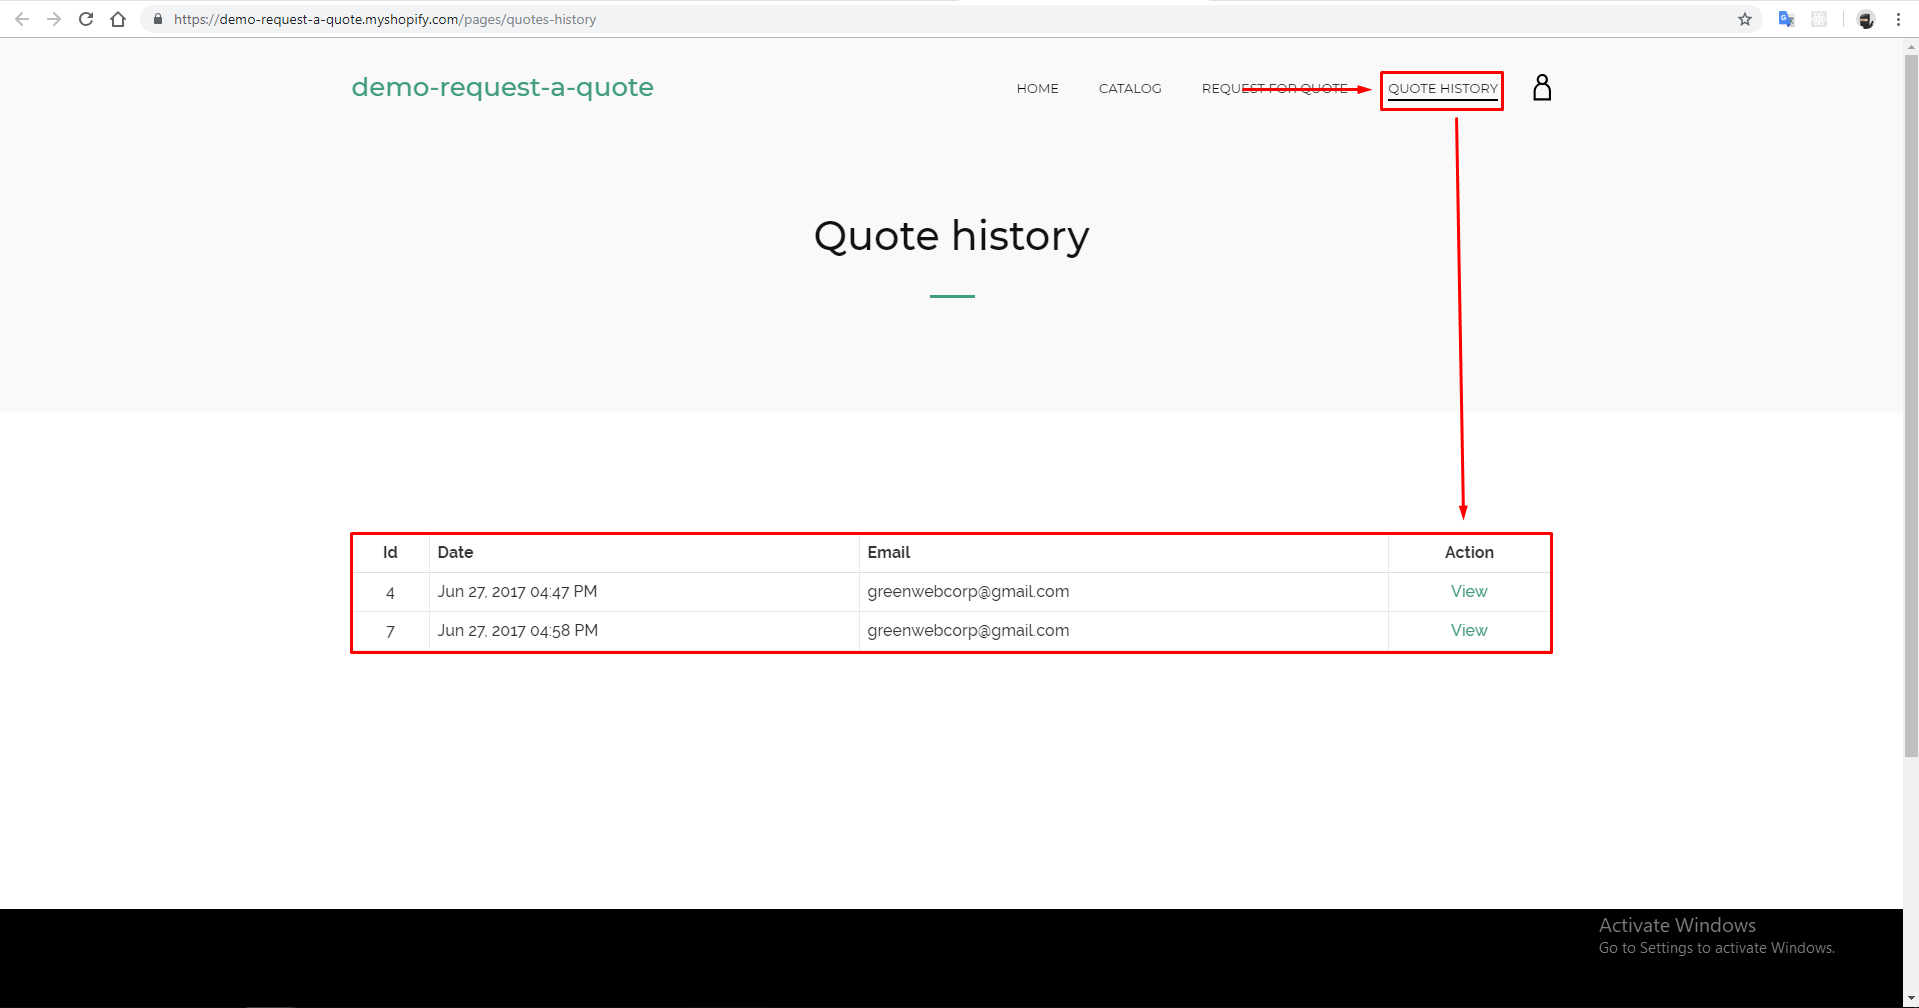 When can I view Quote History page